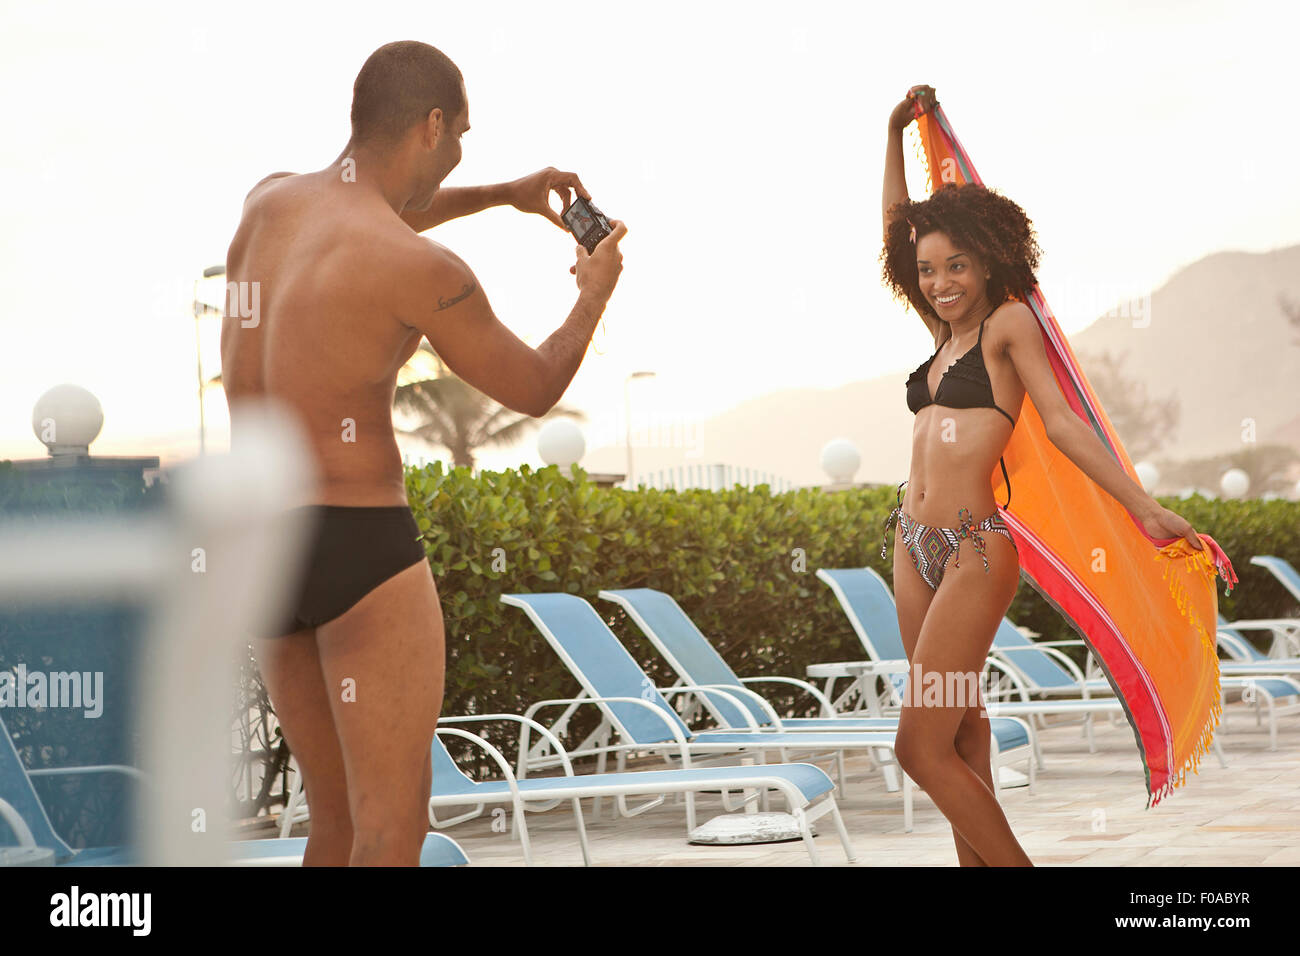 Young woman being photographed by boyfriend at hotel poolside, Rio De Janeiro, Brazil - Stock Image